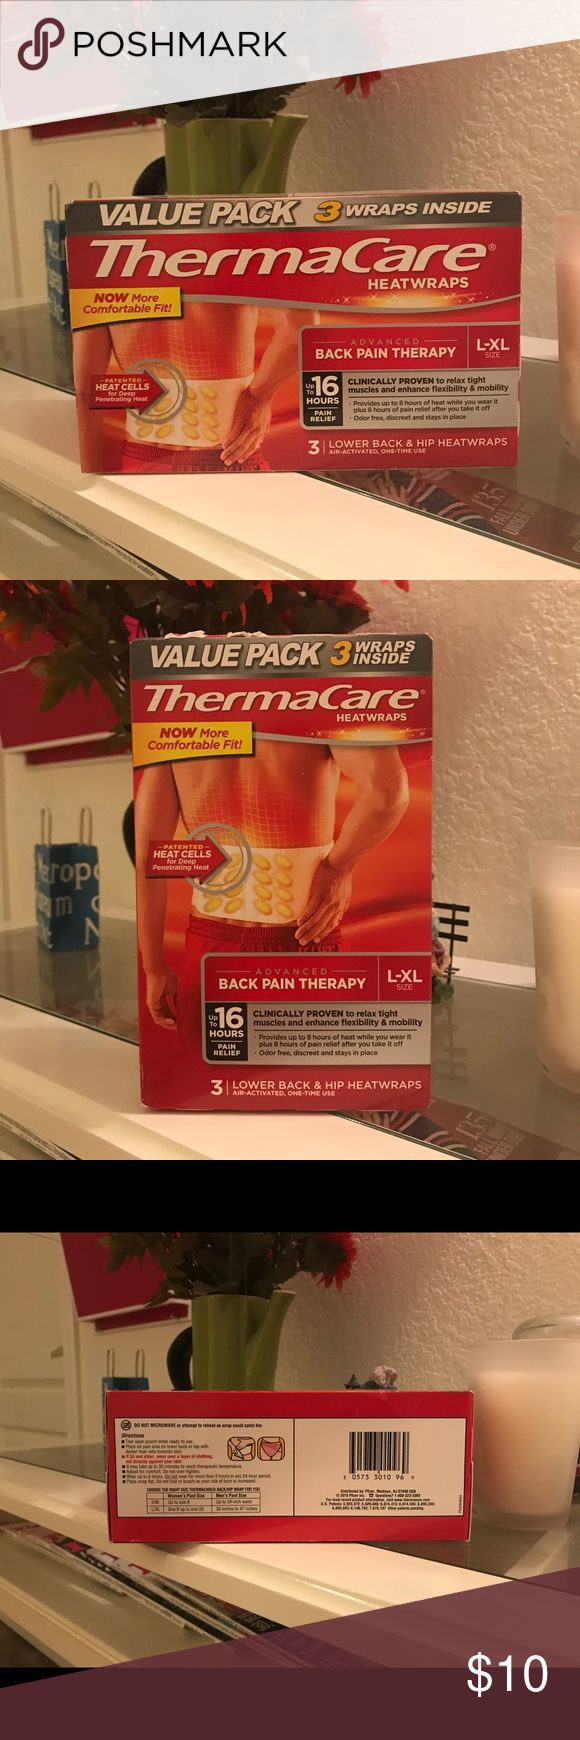 NWOT 3 Unopened ThermaCare Heatwraps Advanced back pain therapy!                             •Provides up to 16 hours of pain relief •Clinically proven to relax muscles and enhance mobility •Air-activated one time use wraps •Designed for lower back and hip •Features deep penetrating heat cells.               Bought but never had a chance to use it. ThermaCare Other